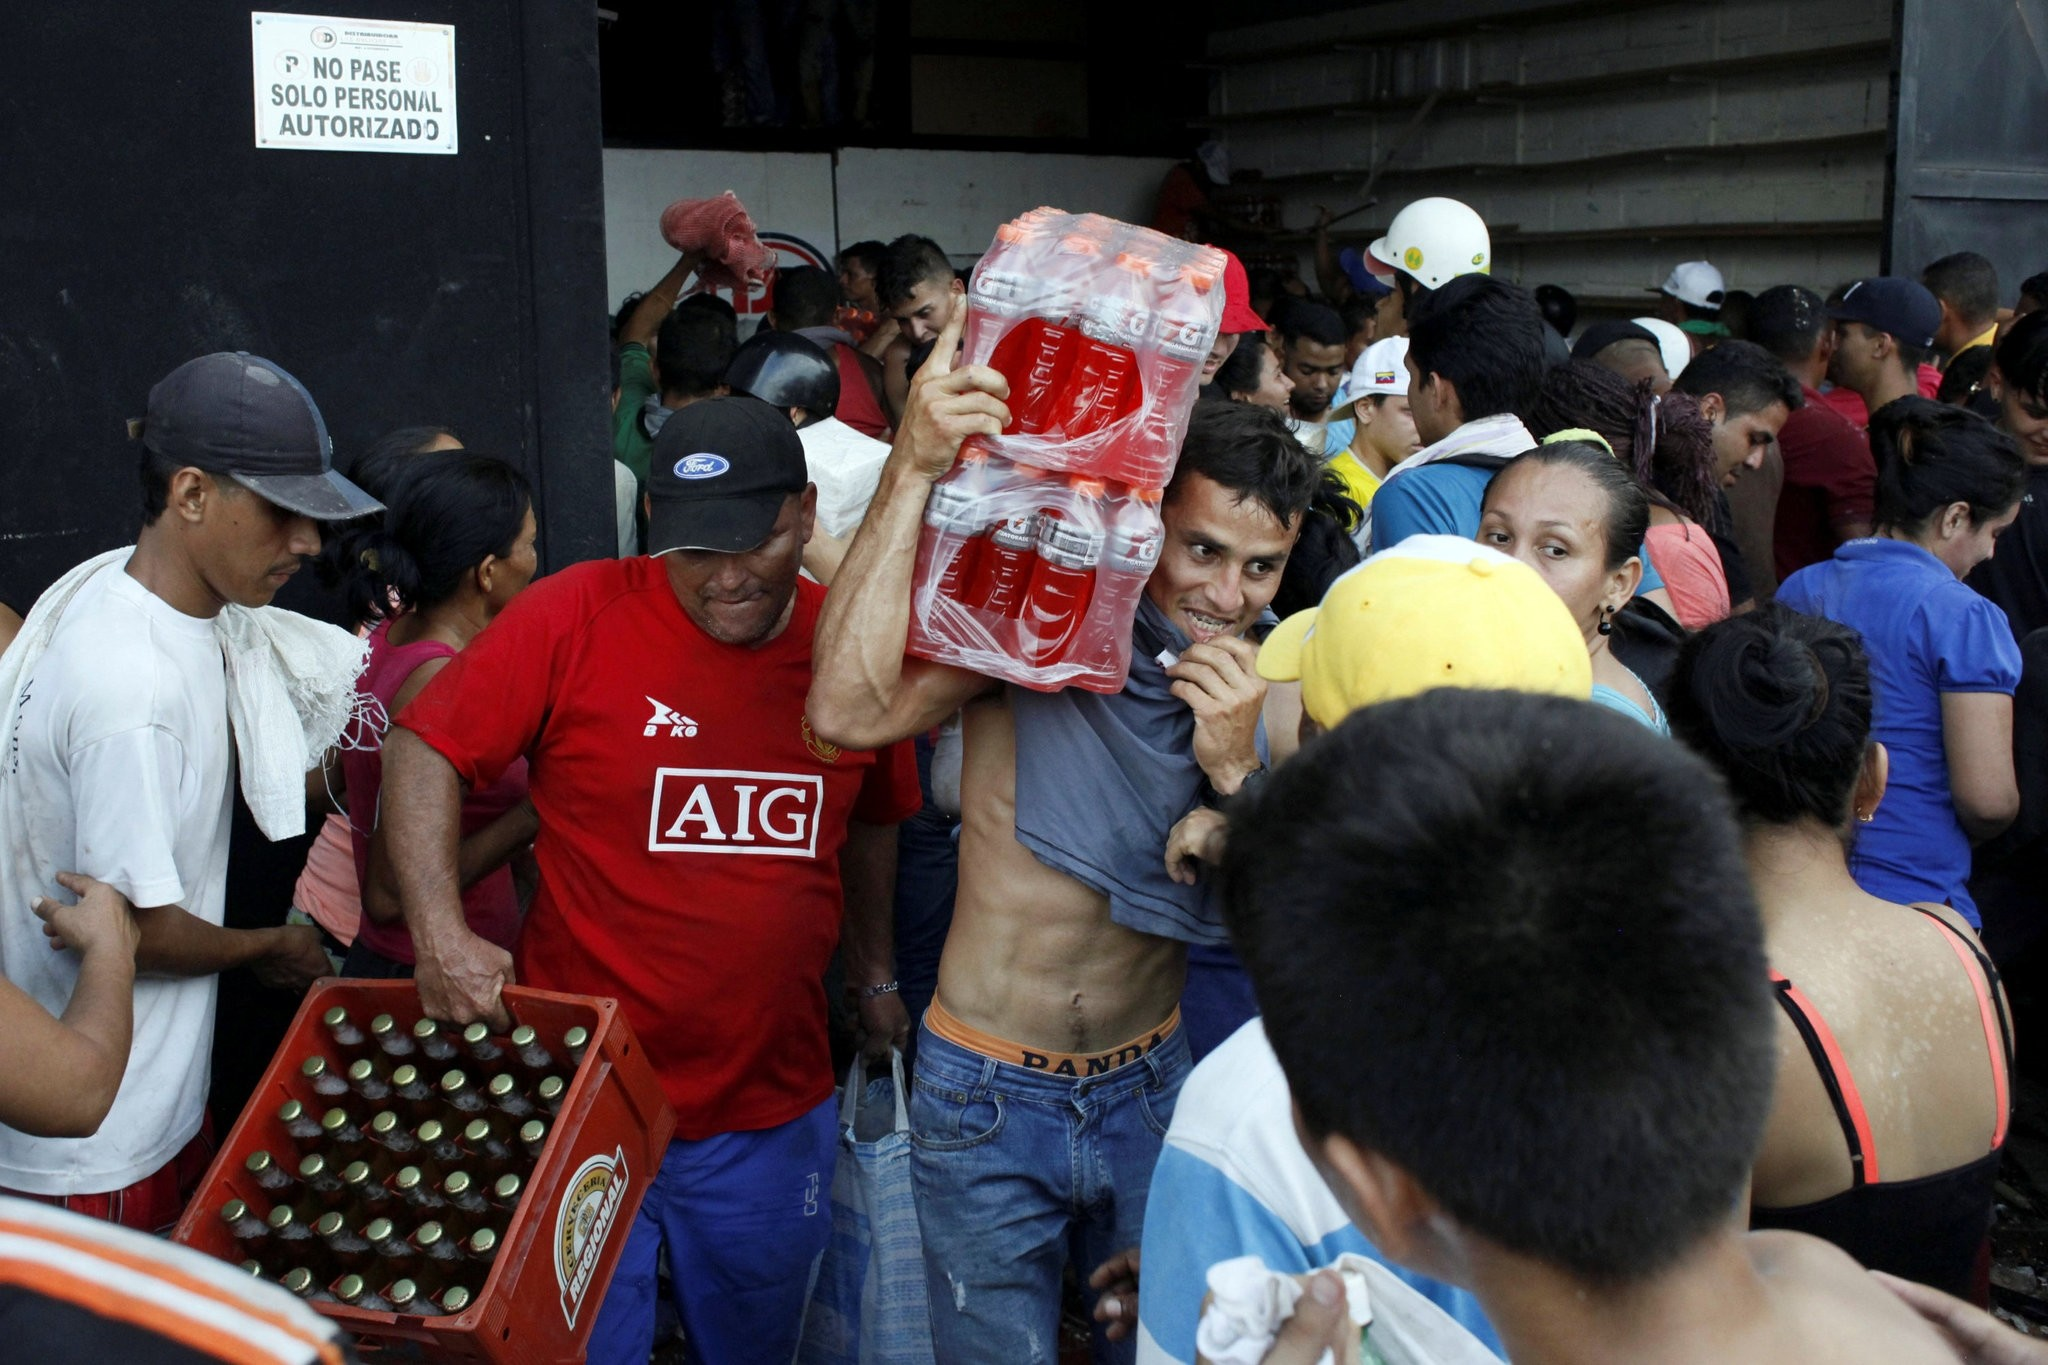 People hold up 100-Bolivar notes during a protest over the lack of cash as the new bank notes have not yet appeared, at the u201cTroncal 5u201d road in San Cristobal in Venezuelau2019s Tachira state.